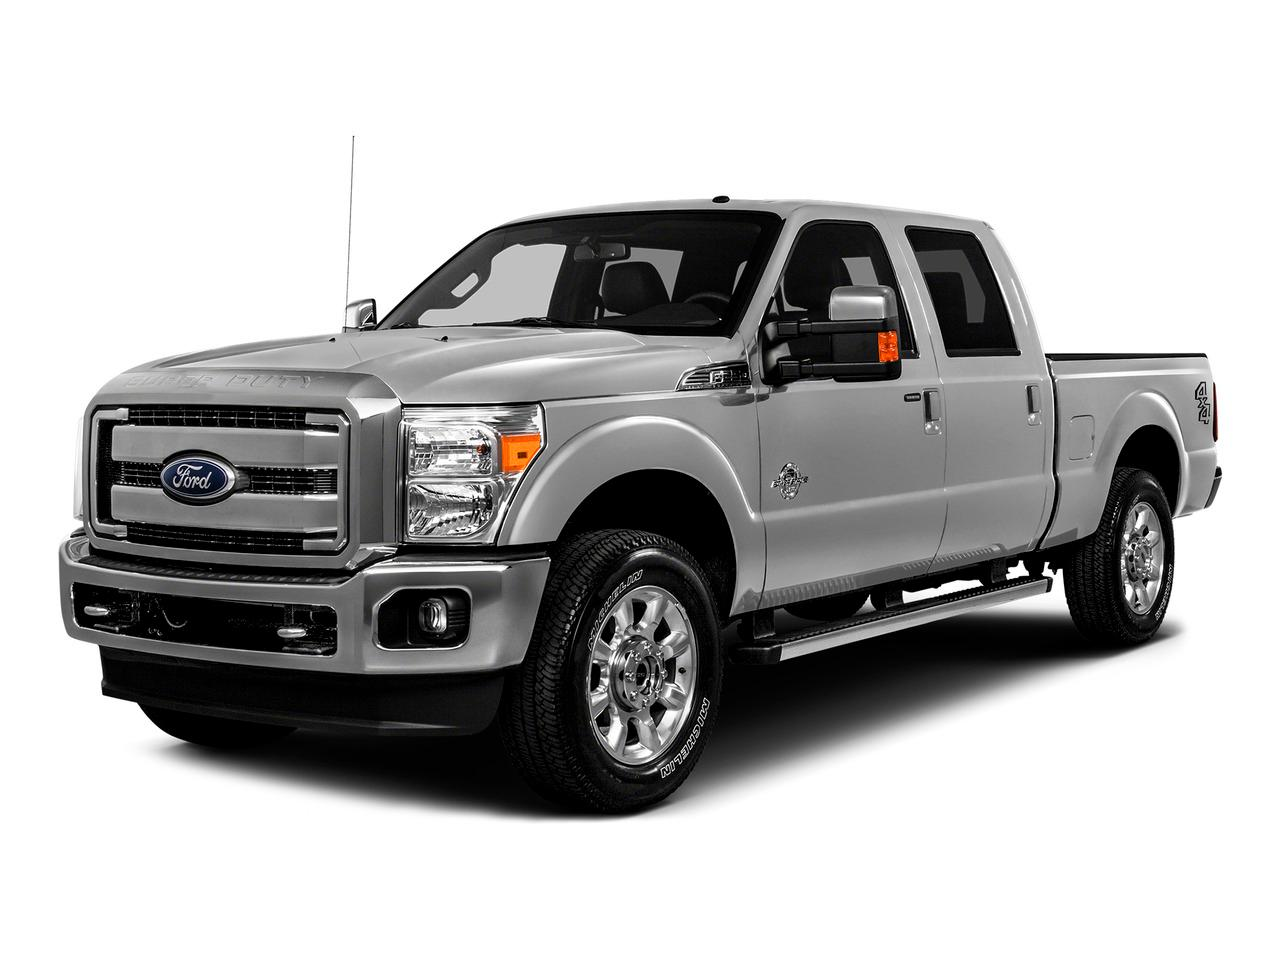 2016 Ford Super Duty F-250 SRW Vehicle Photo in Prescott, AZ 86305